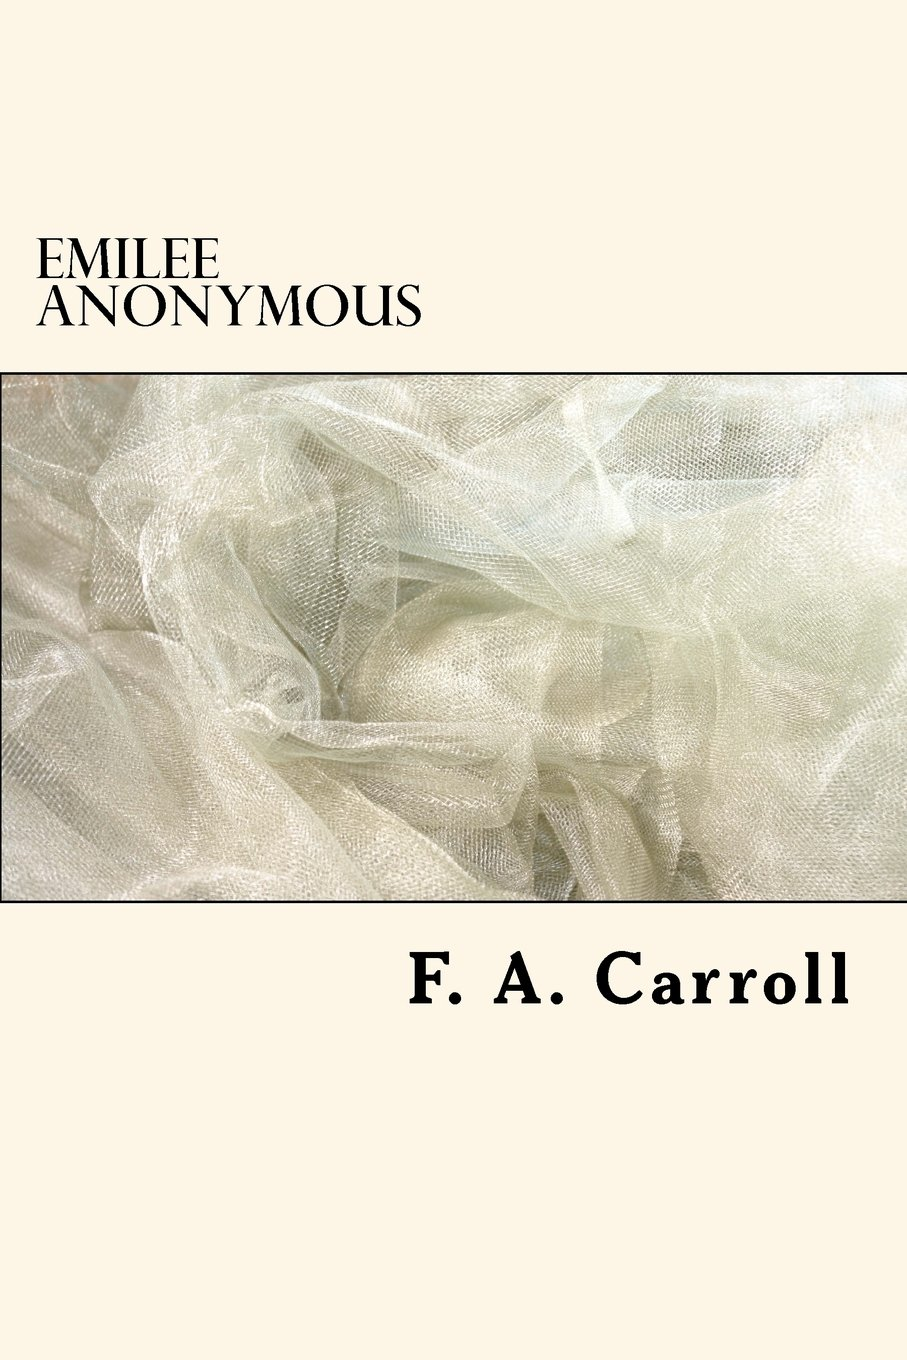 Interview with novelist F.A. Carroll